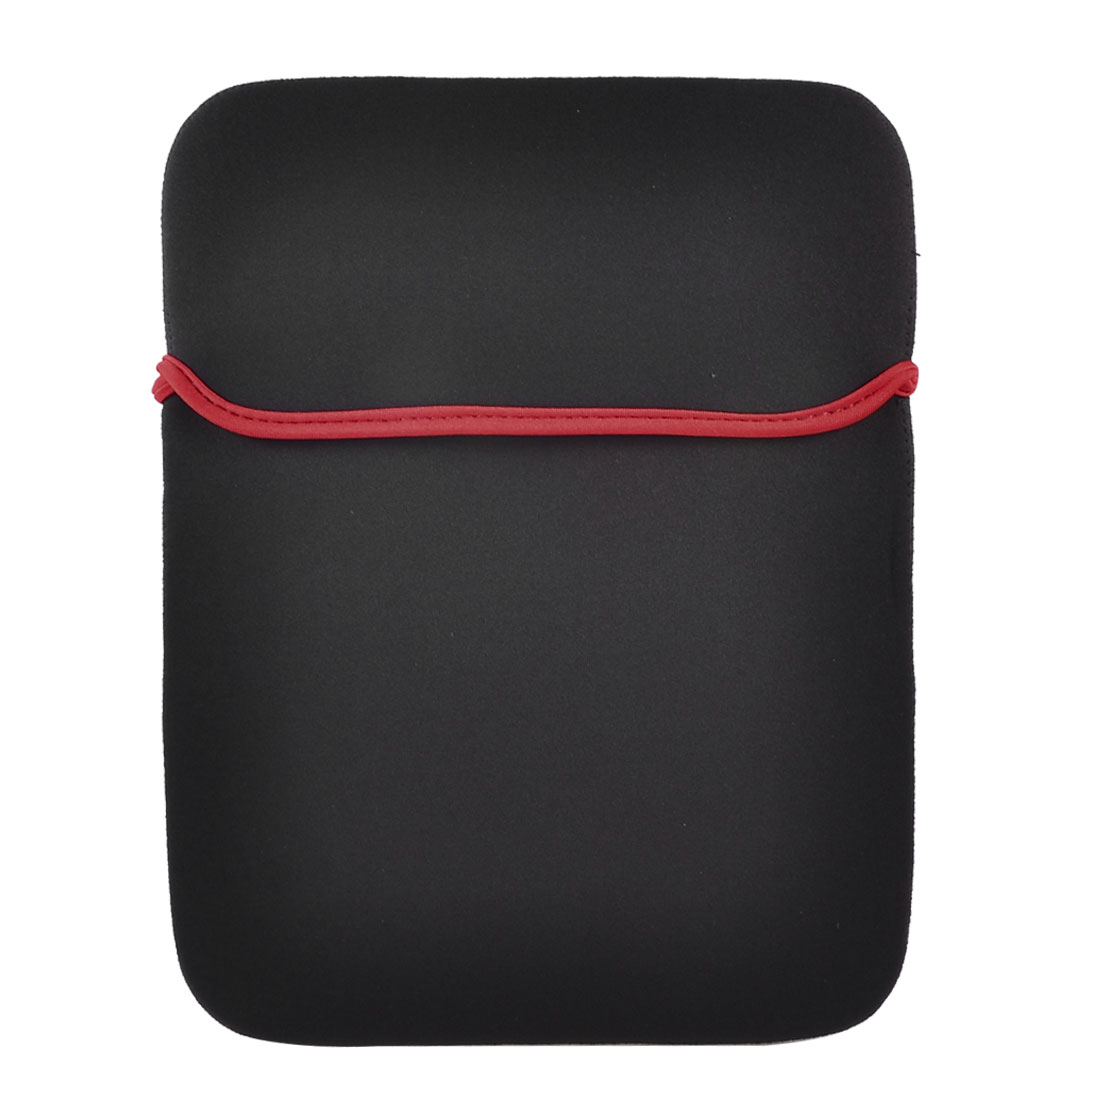 "15"" 15.4"" Laptop Red Brim Black Neoprene Sleeve Bag Case Pouch Cover"